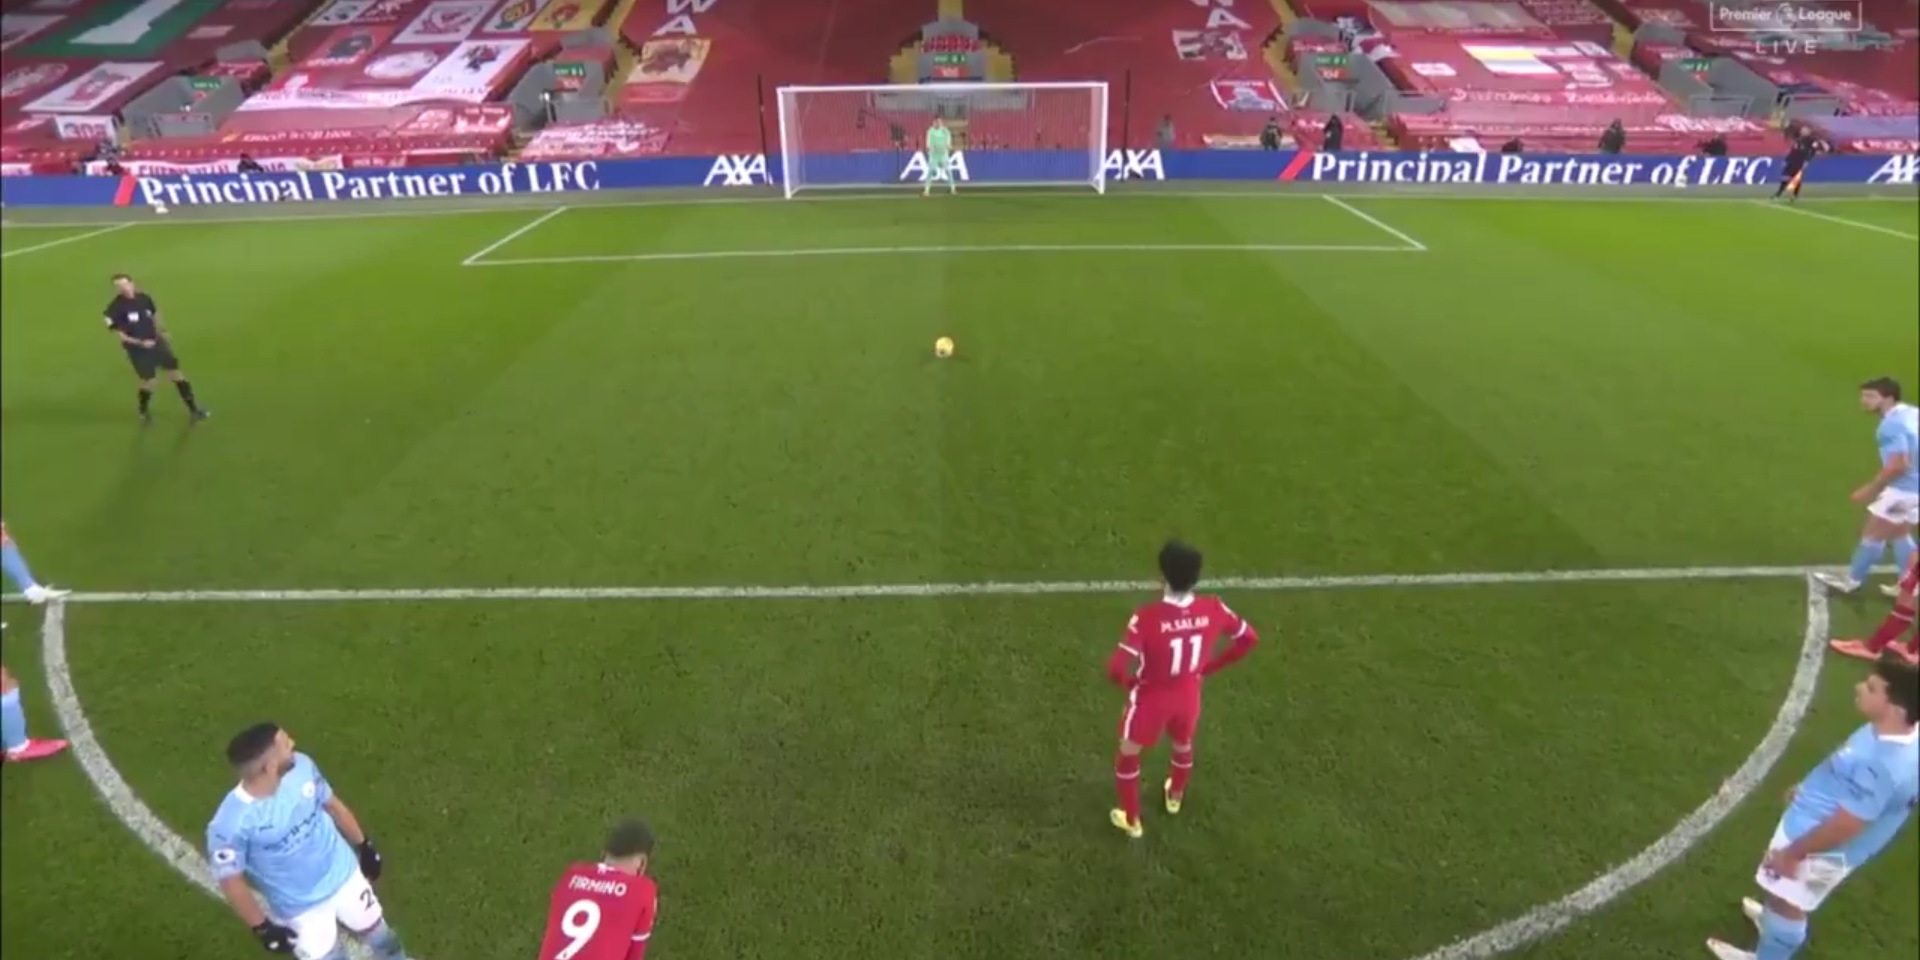 (Video) Mo Salah keeps Liverpool's title hopes alive with expert penalty-kick